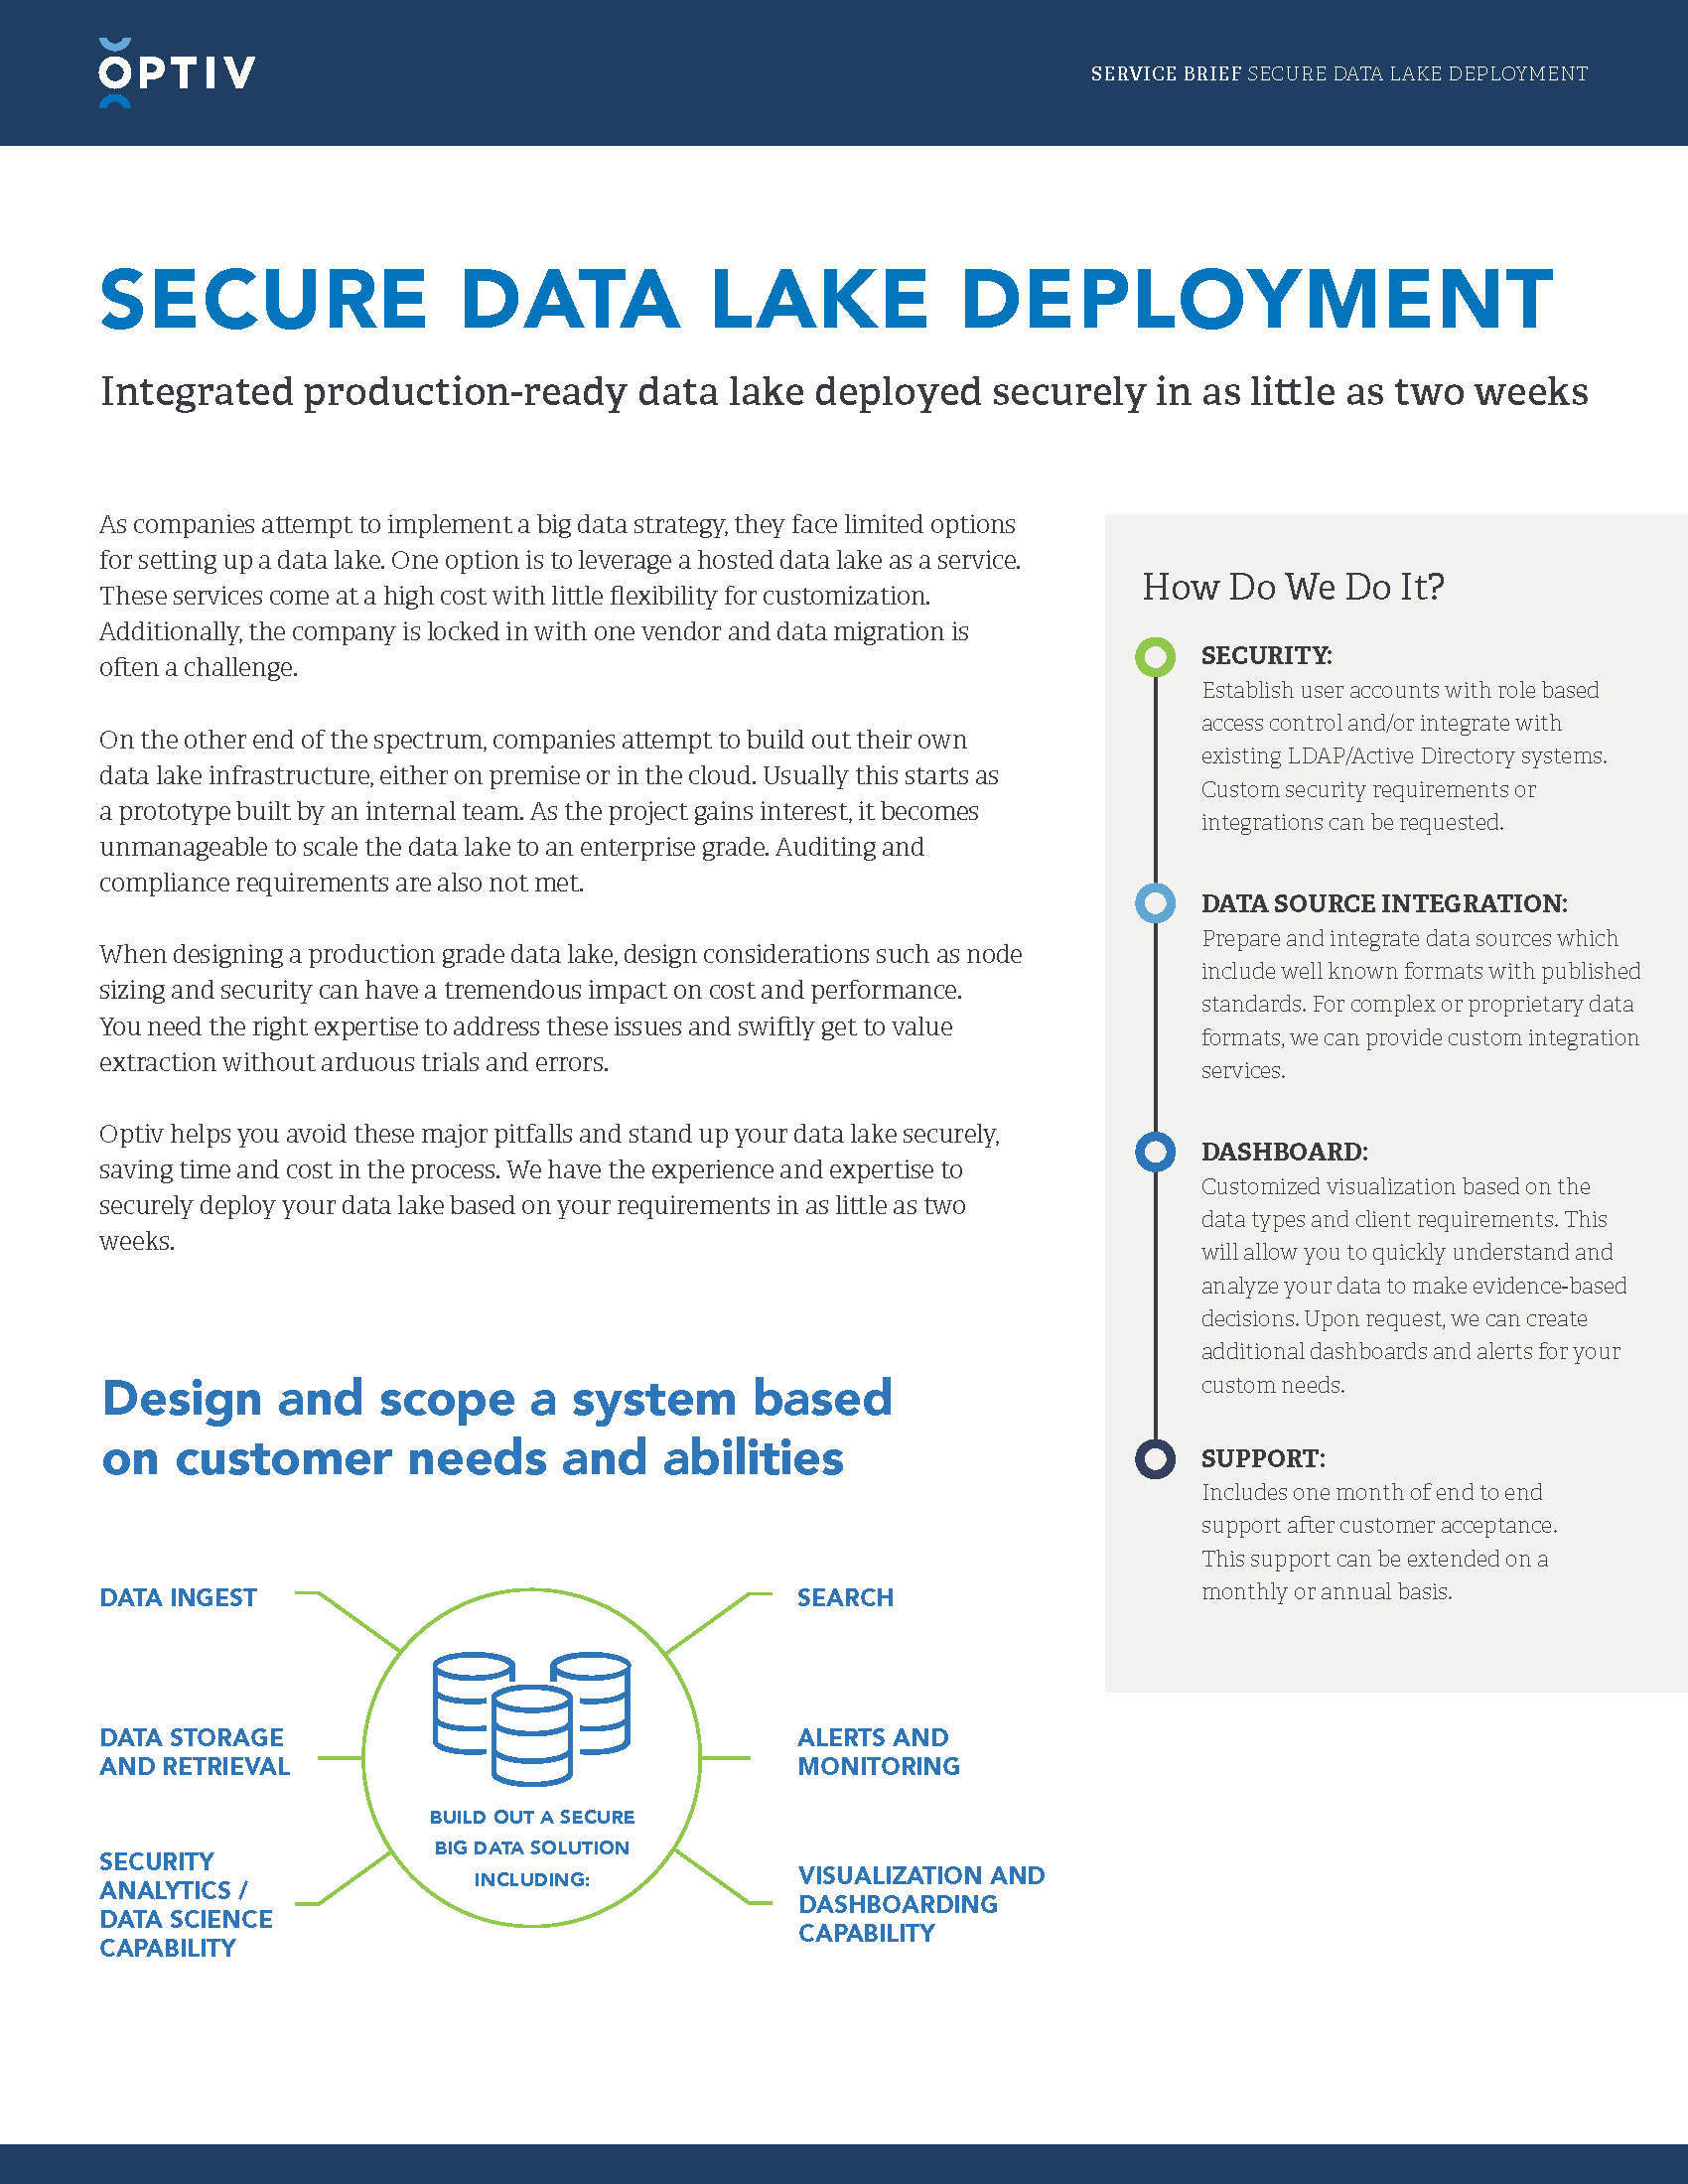 Secure Data Lake Deployment_Service Brief_Page_1